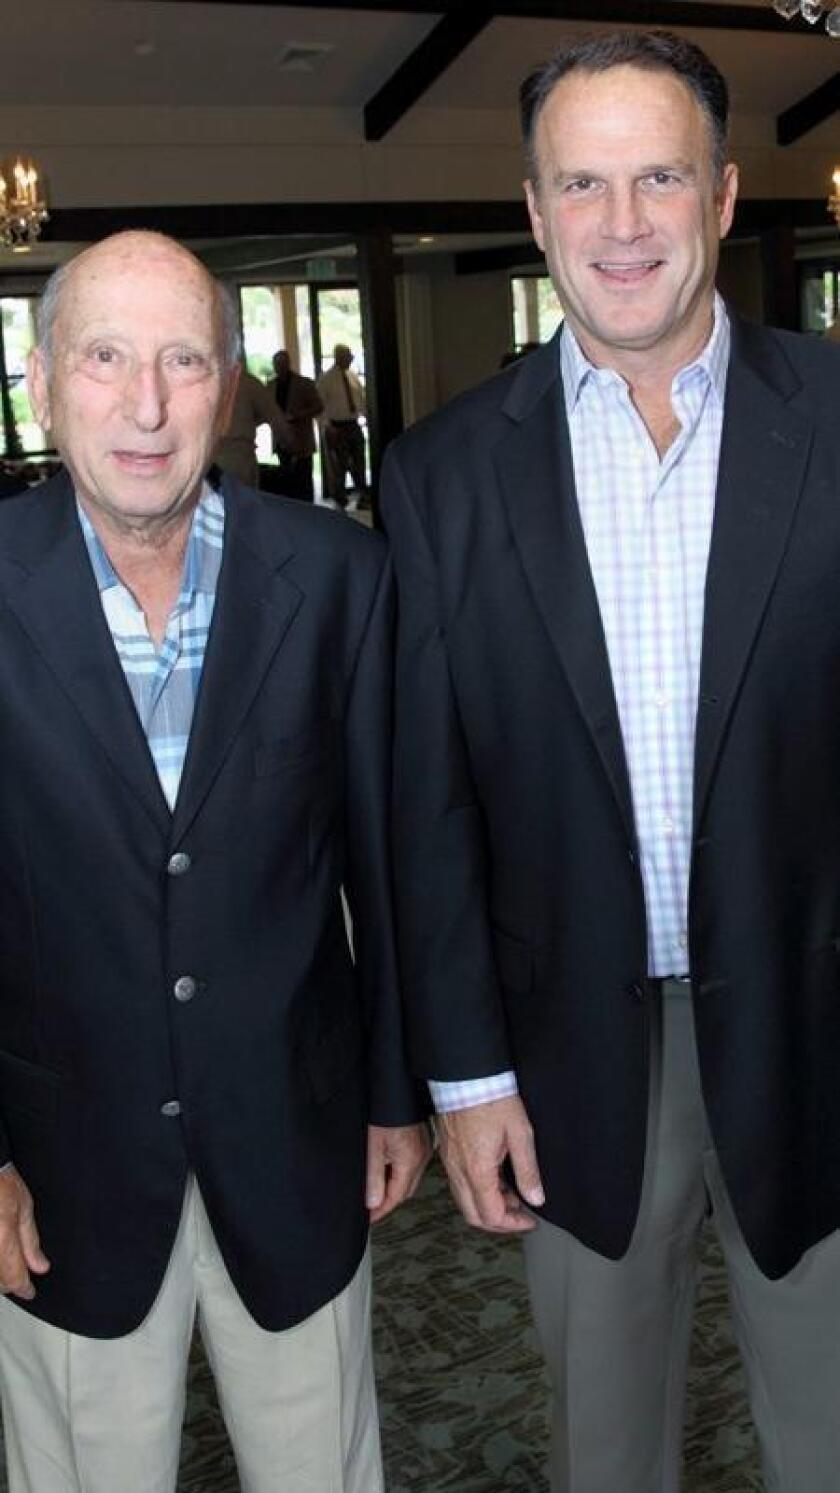 Rancho Santa Fe Association President Fred Wasserman and Mike Licosati